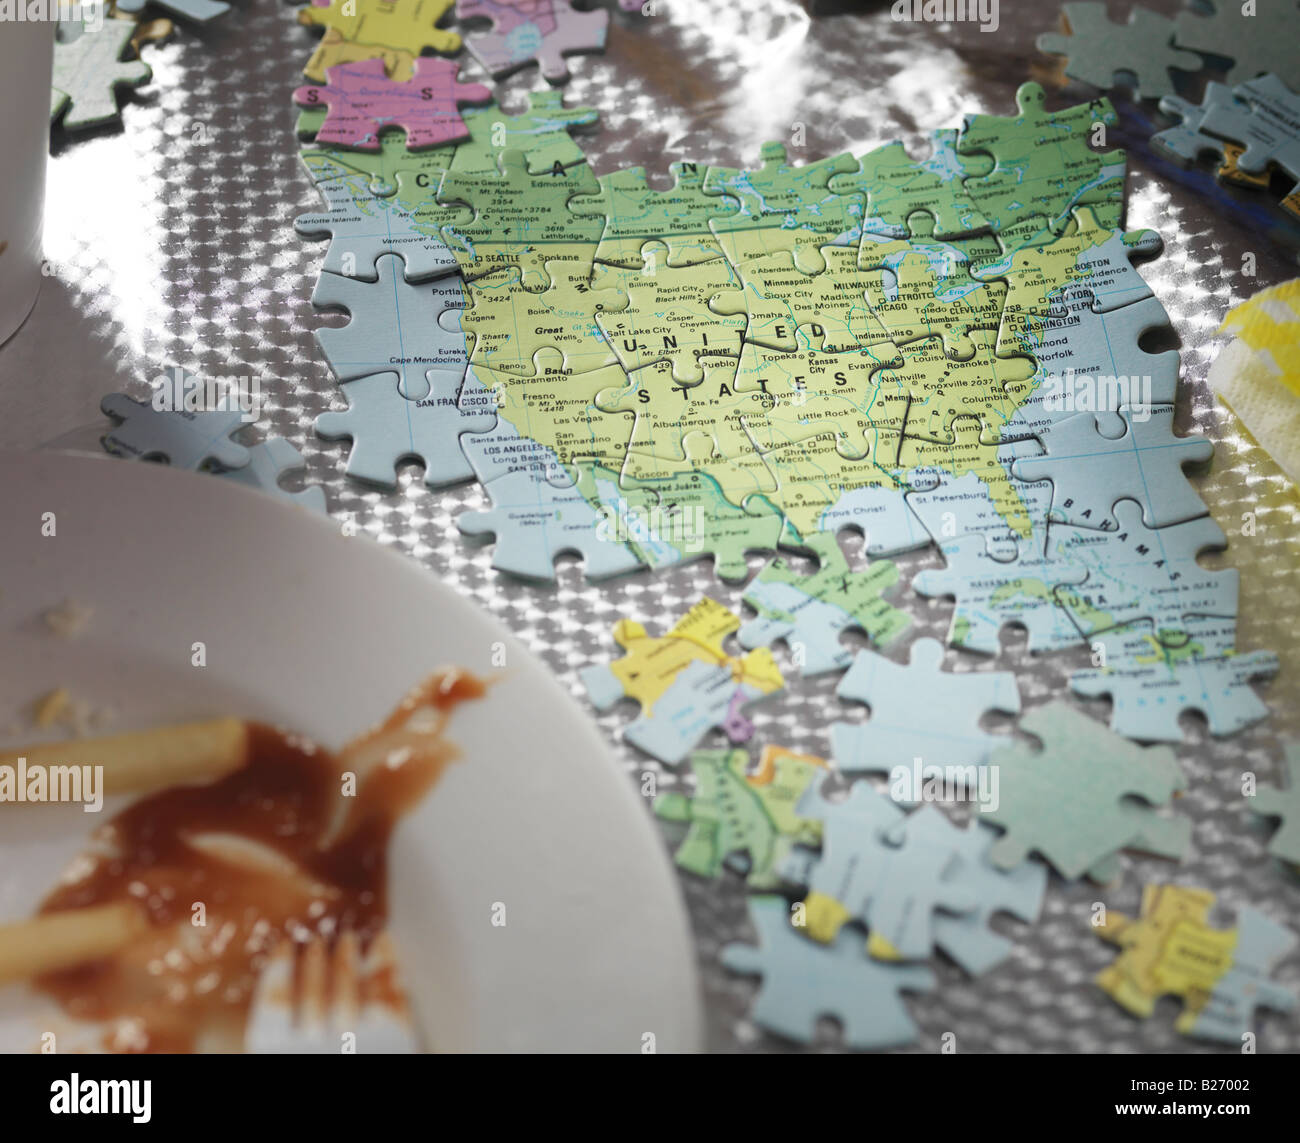 Map Of America Jigsaw.Jigsaw Map Of North America With Junk Food Stock Photo 18593346 Alamy